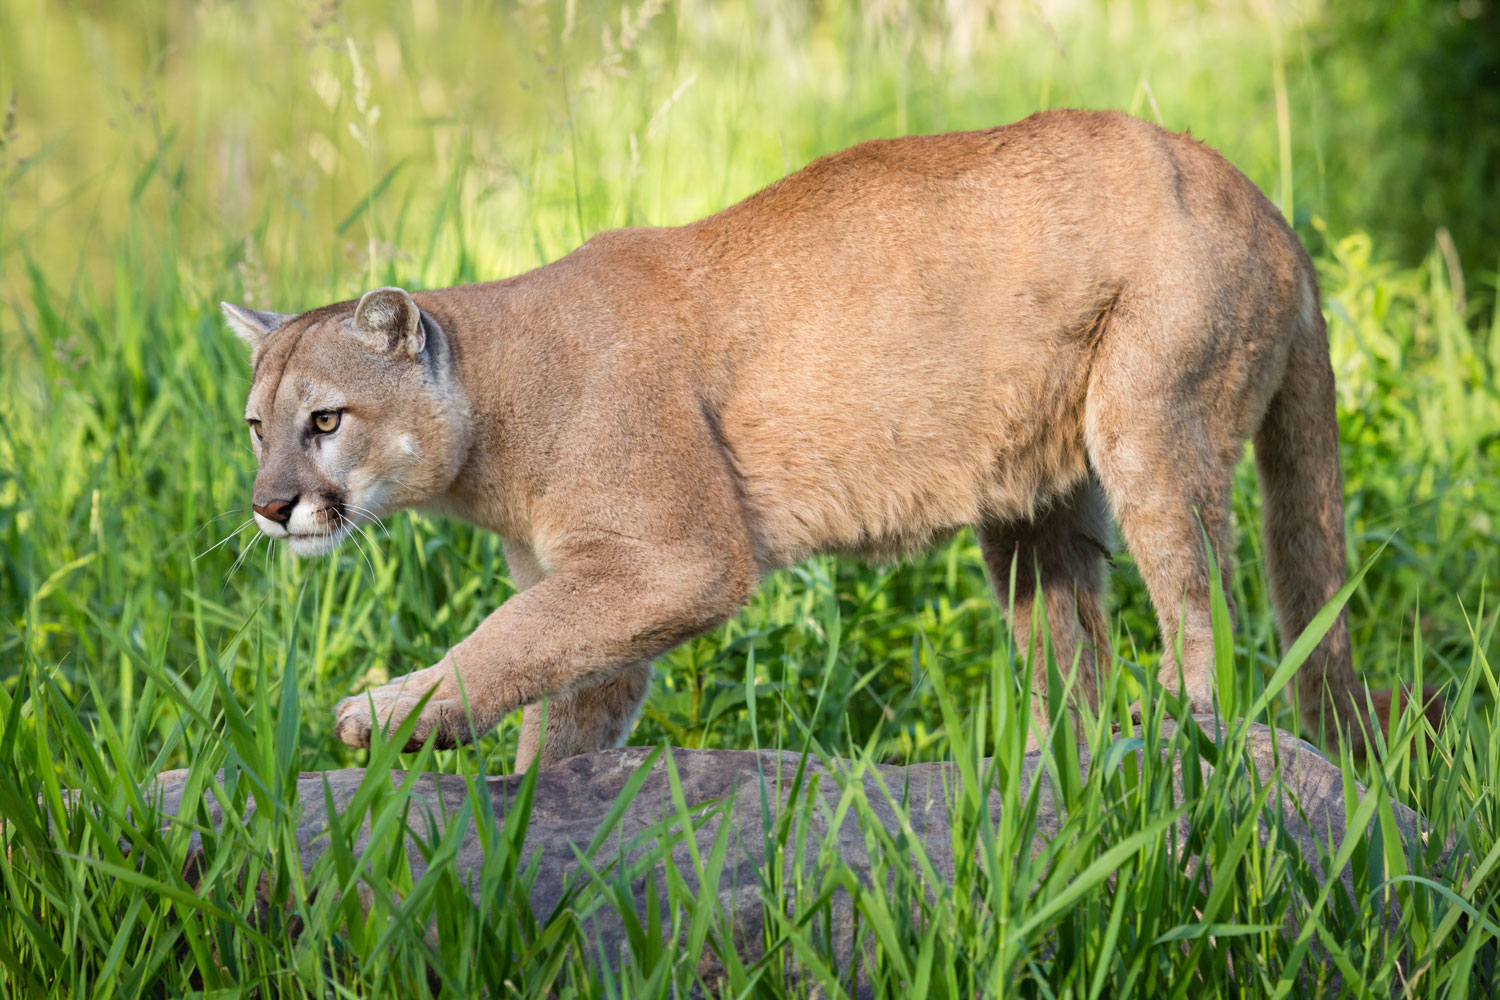 A big and strong mountain lion stalking his prey